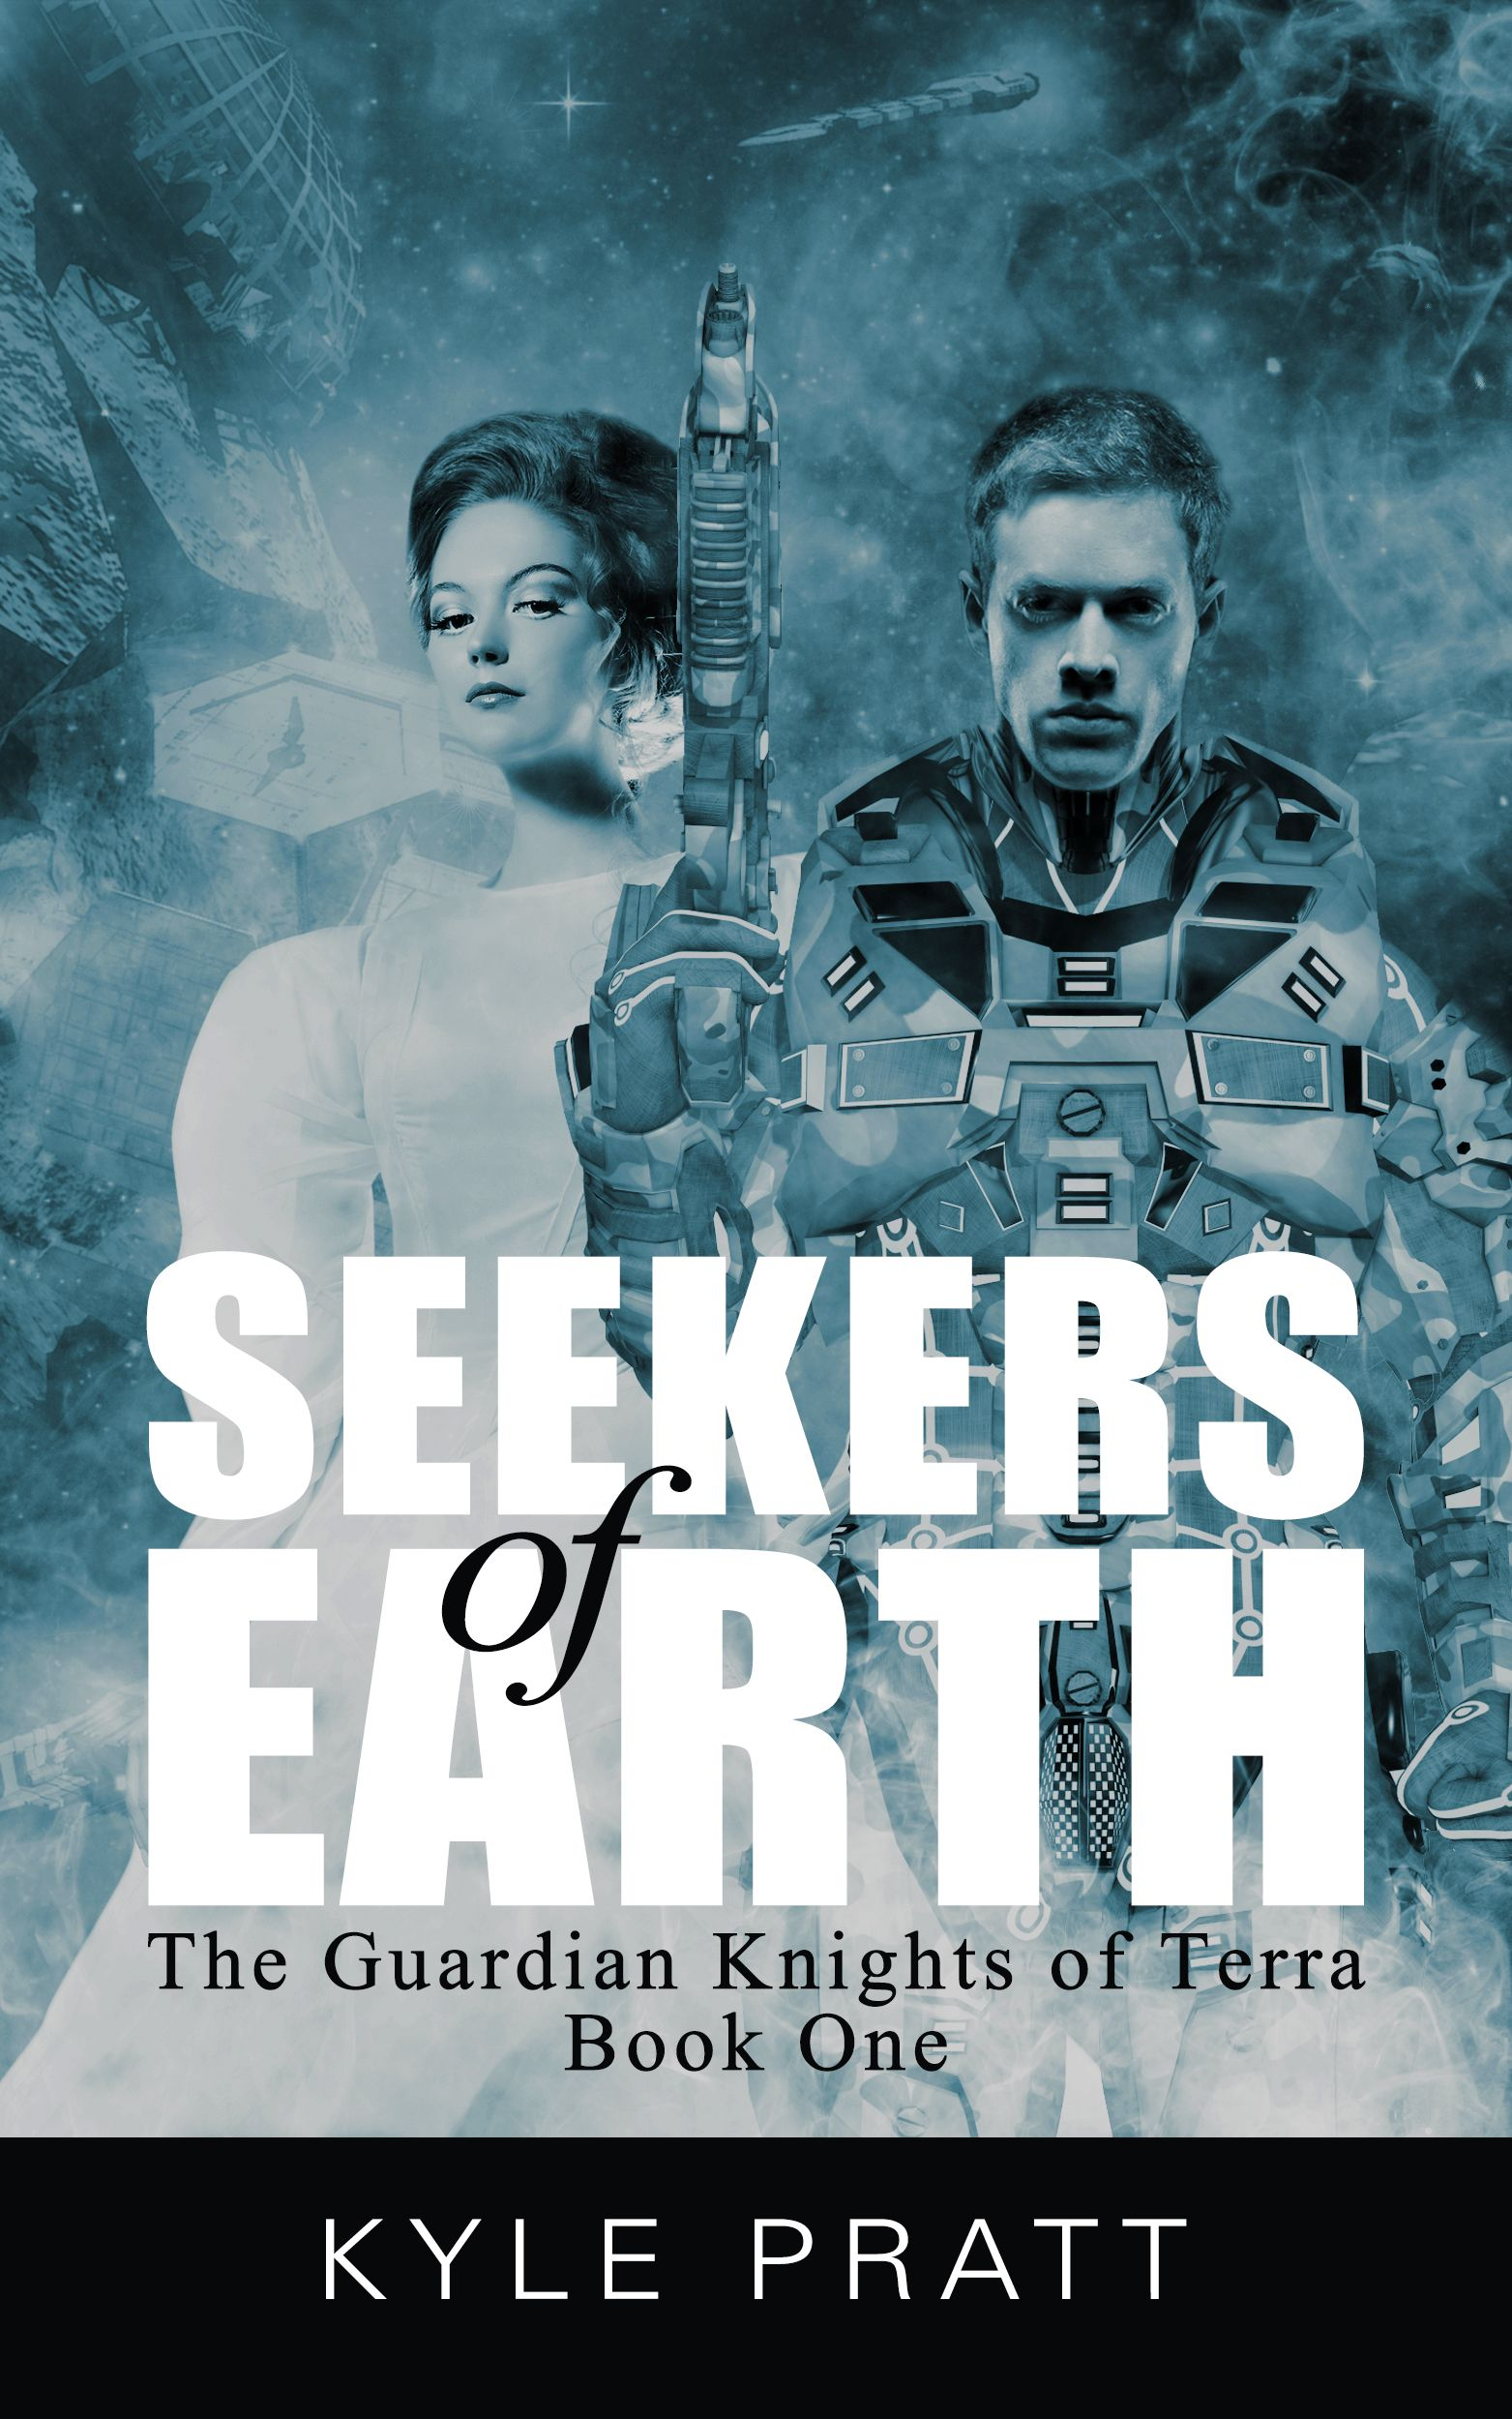 Ebook Deals On Seekers Of Earth By Kyle Pratt, Free And Discounted Ebook  Deals For Seekers Of Earth And Other Great Books